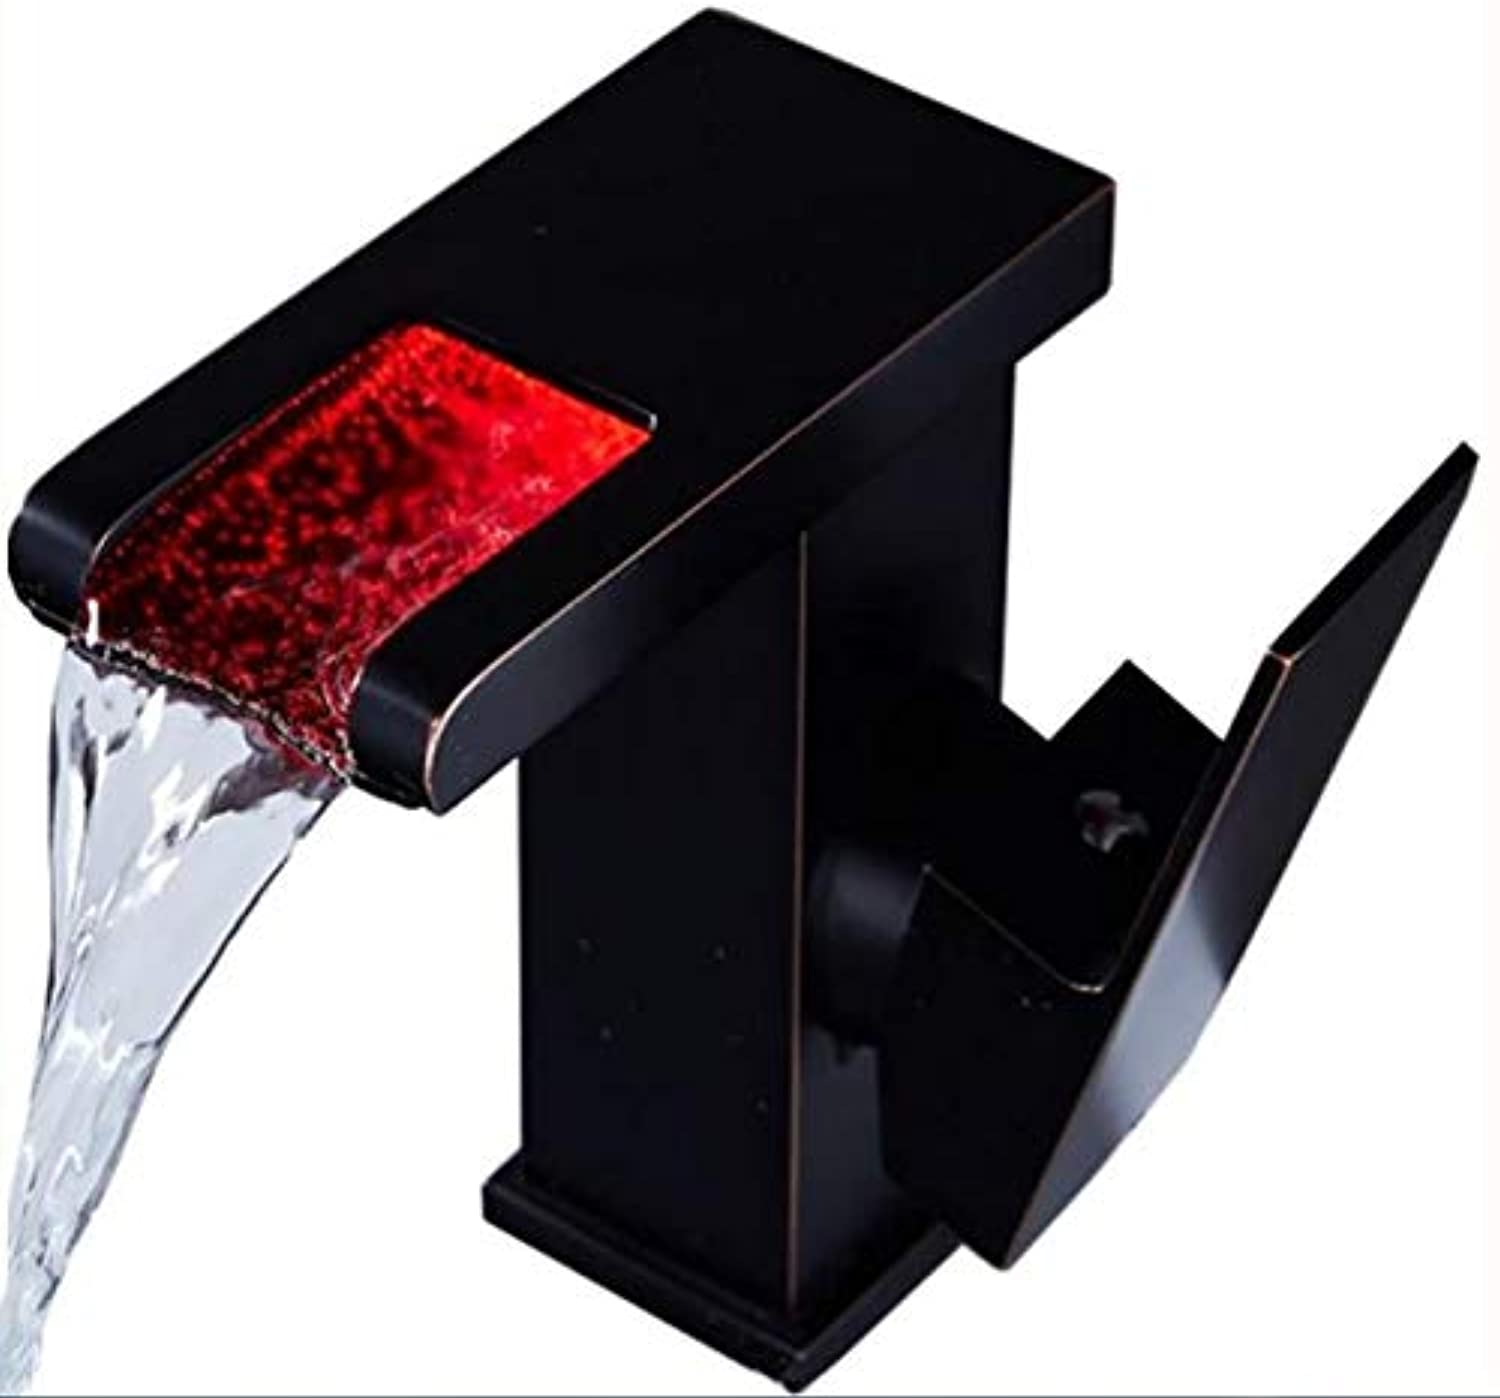 Mkkwp Basin Faucet Brass Hot and Cold European American Retro Waterfall with Light Glowing Above Counter Basin Led Tap